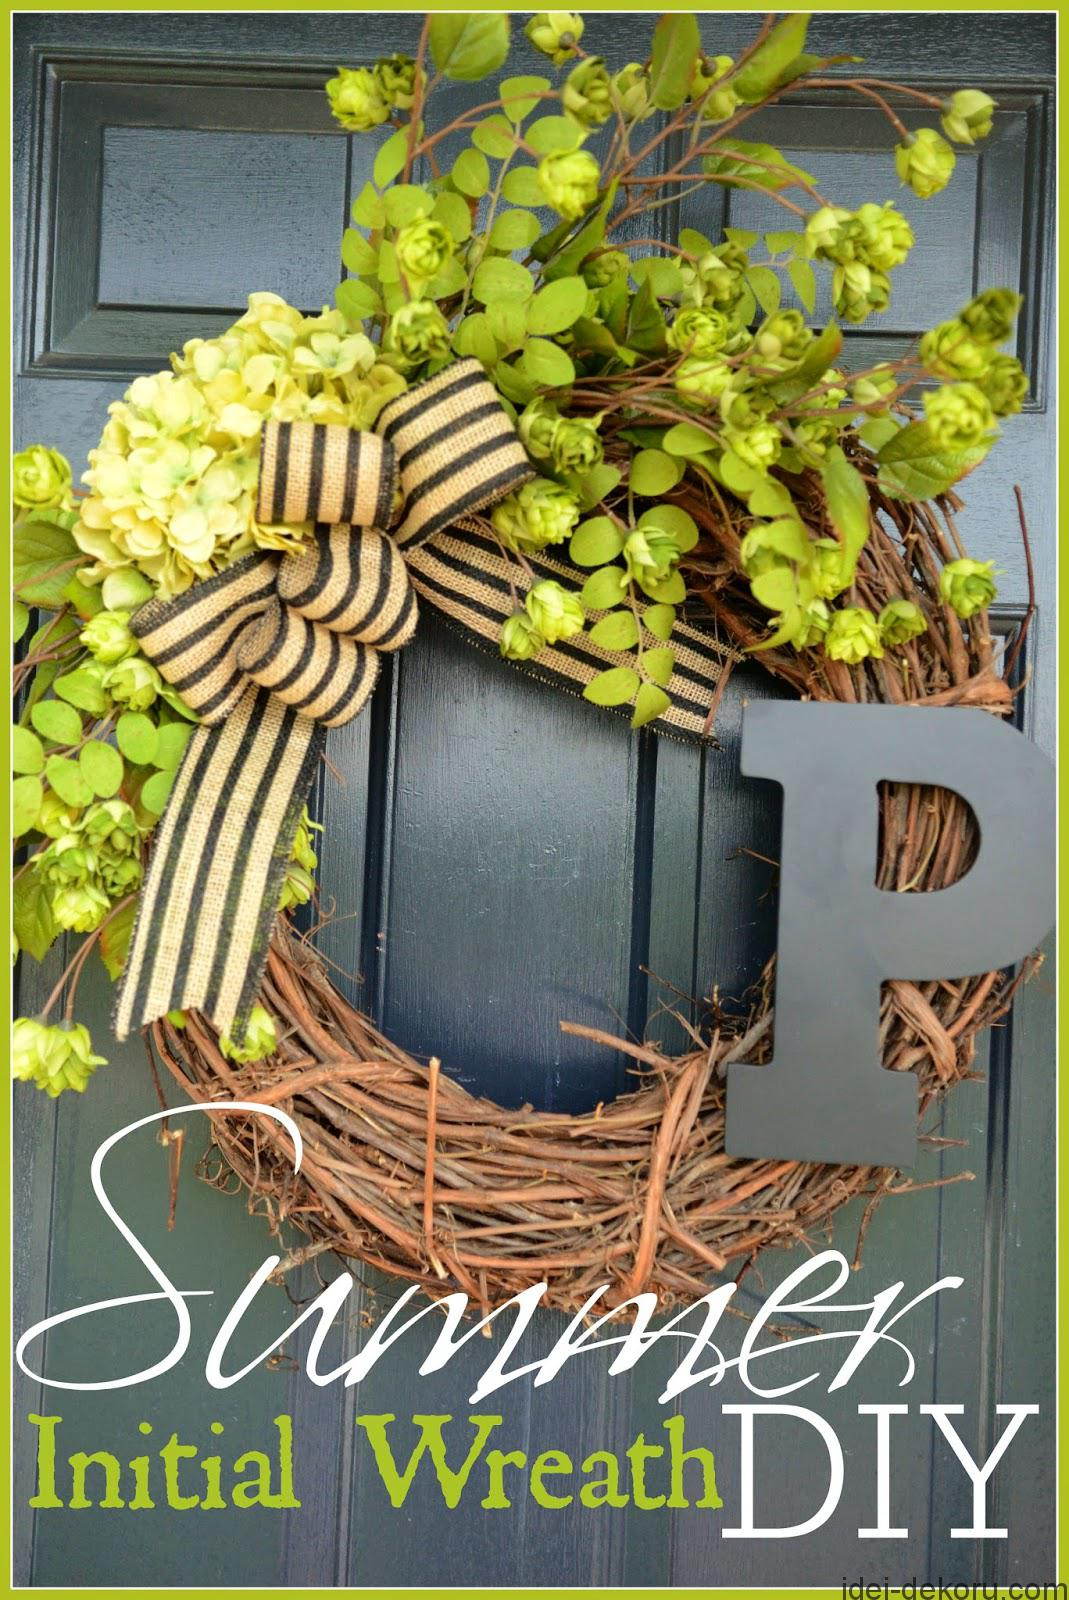 SUMMER-INITIAL-WREATH-TITLE PAGE-stonegbleblog.com